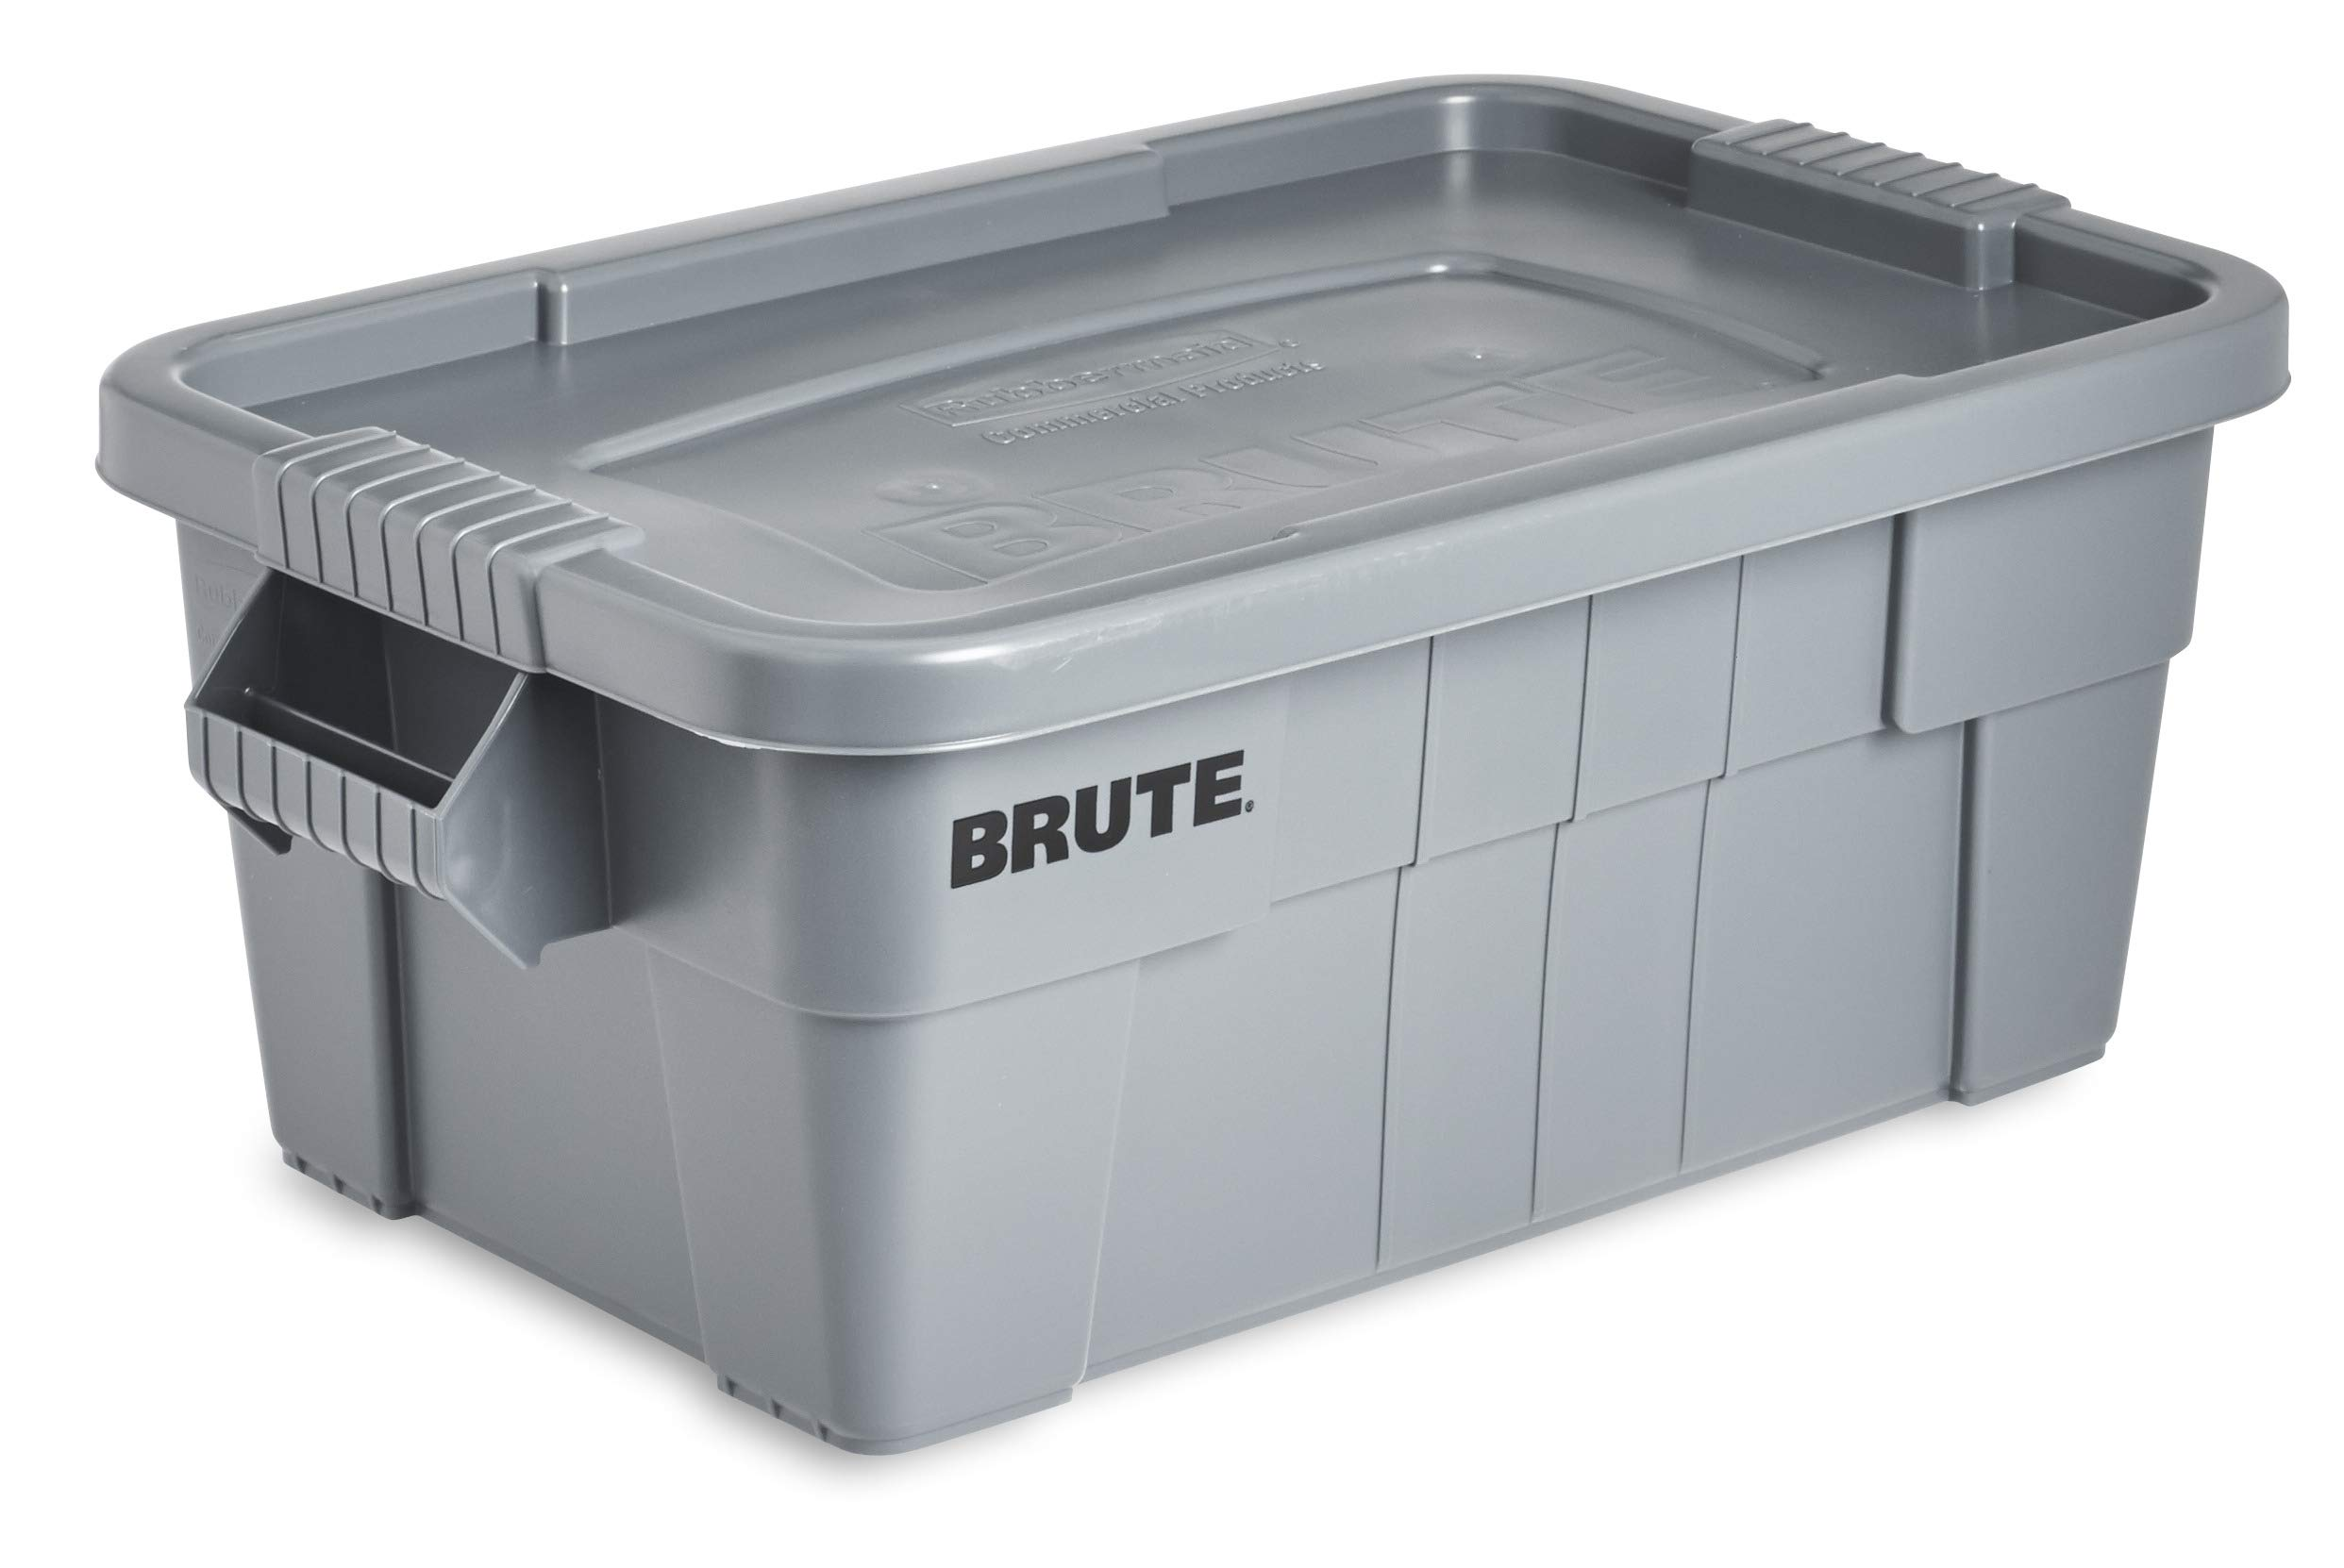 Rubbermaid Commercial Products Brute Tote Storage Container with Lid, 14-Gallon, Gray (FG9S3000GRAY) (Pack of 6) by Rubbermaid Commercial Products